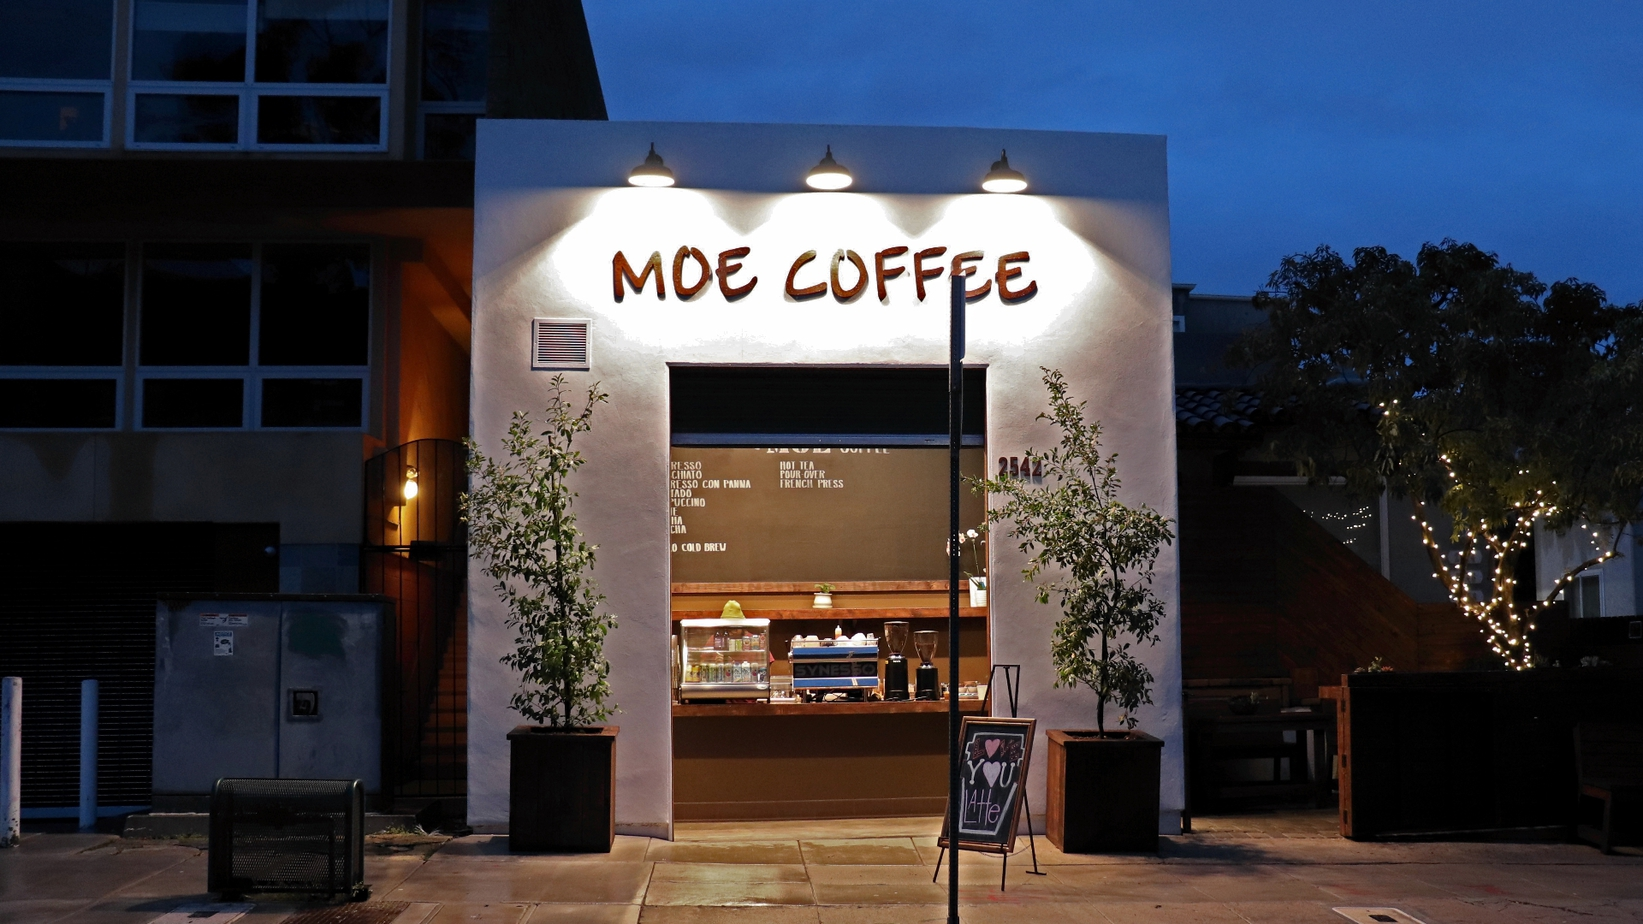 Moe Coffee - Best Coffee Shop in San Diego Little Italy